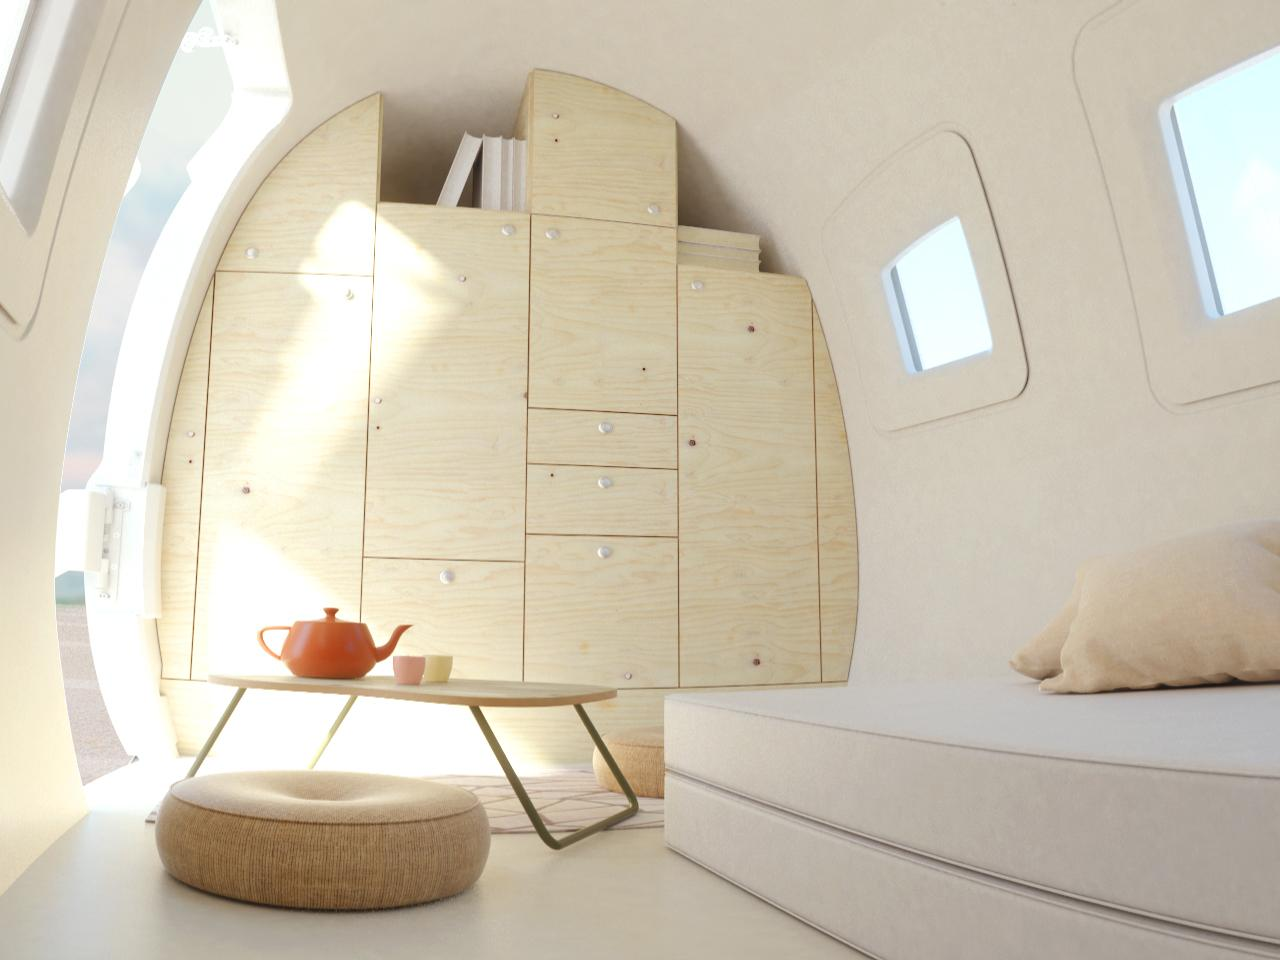 As standard, the Space by Ecocapsule's interior comes with a wooden floor and the storage space pictured